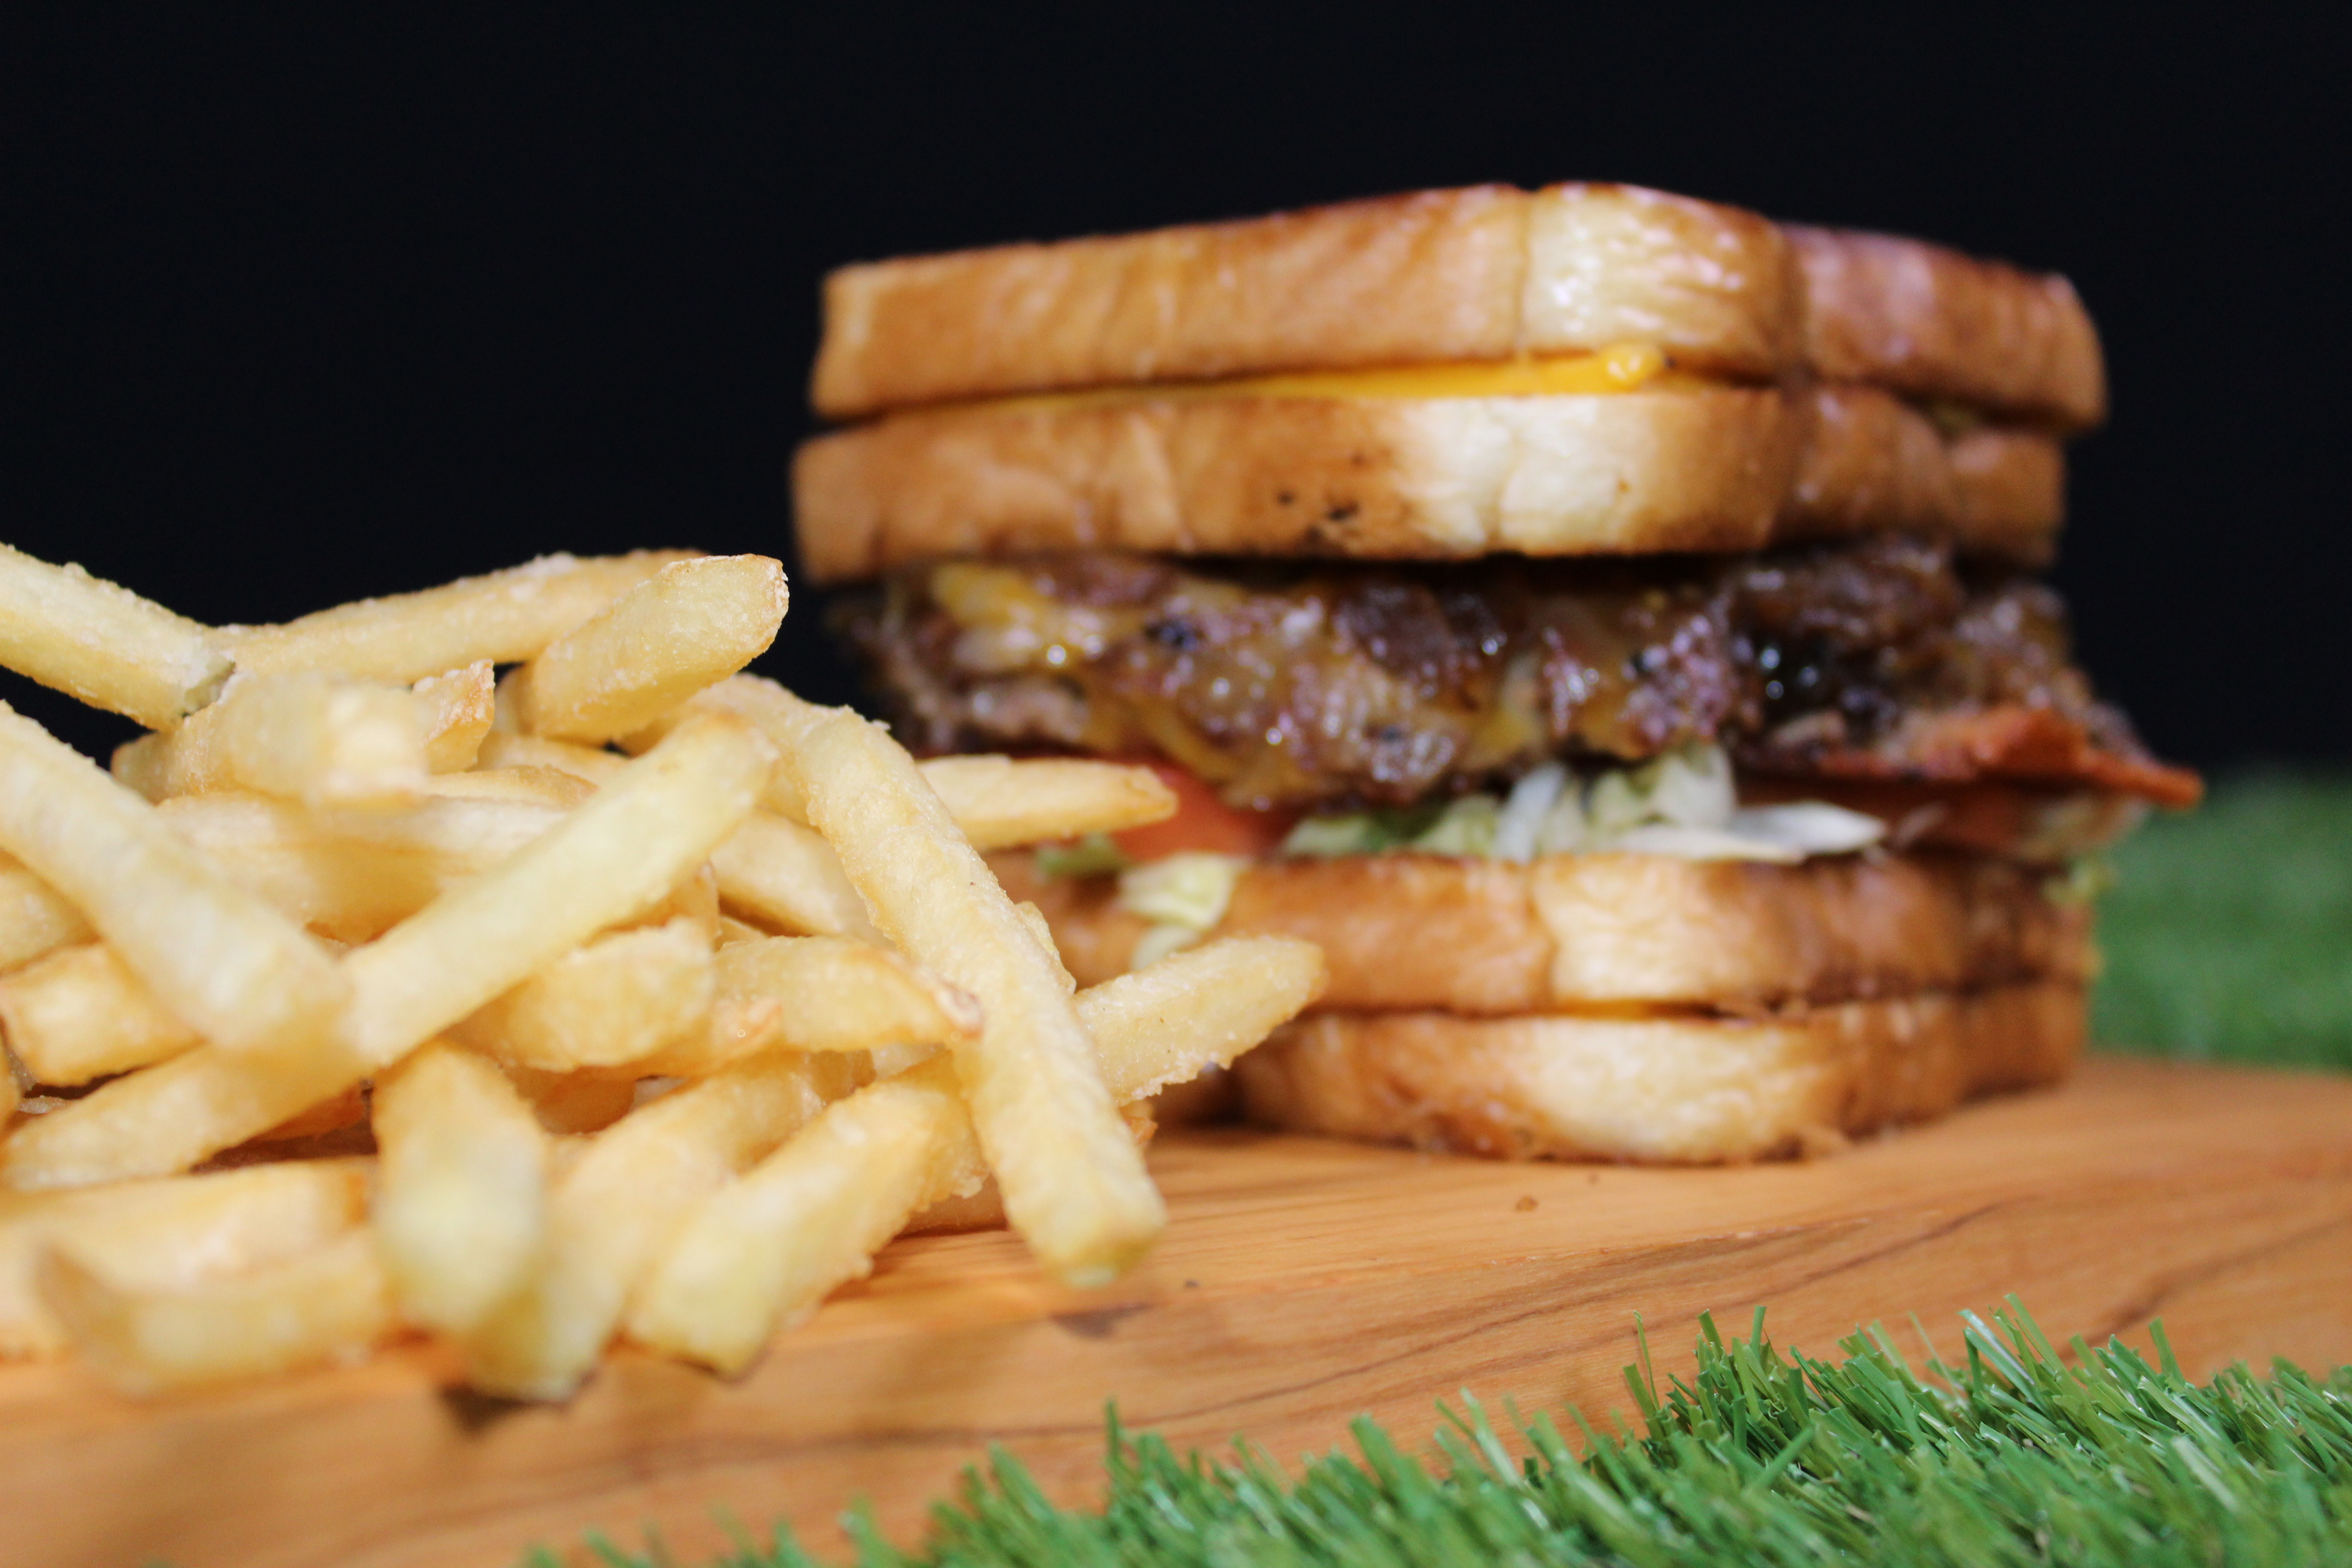 Grilled Chesse Buger and Fries